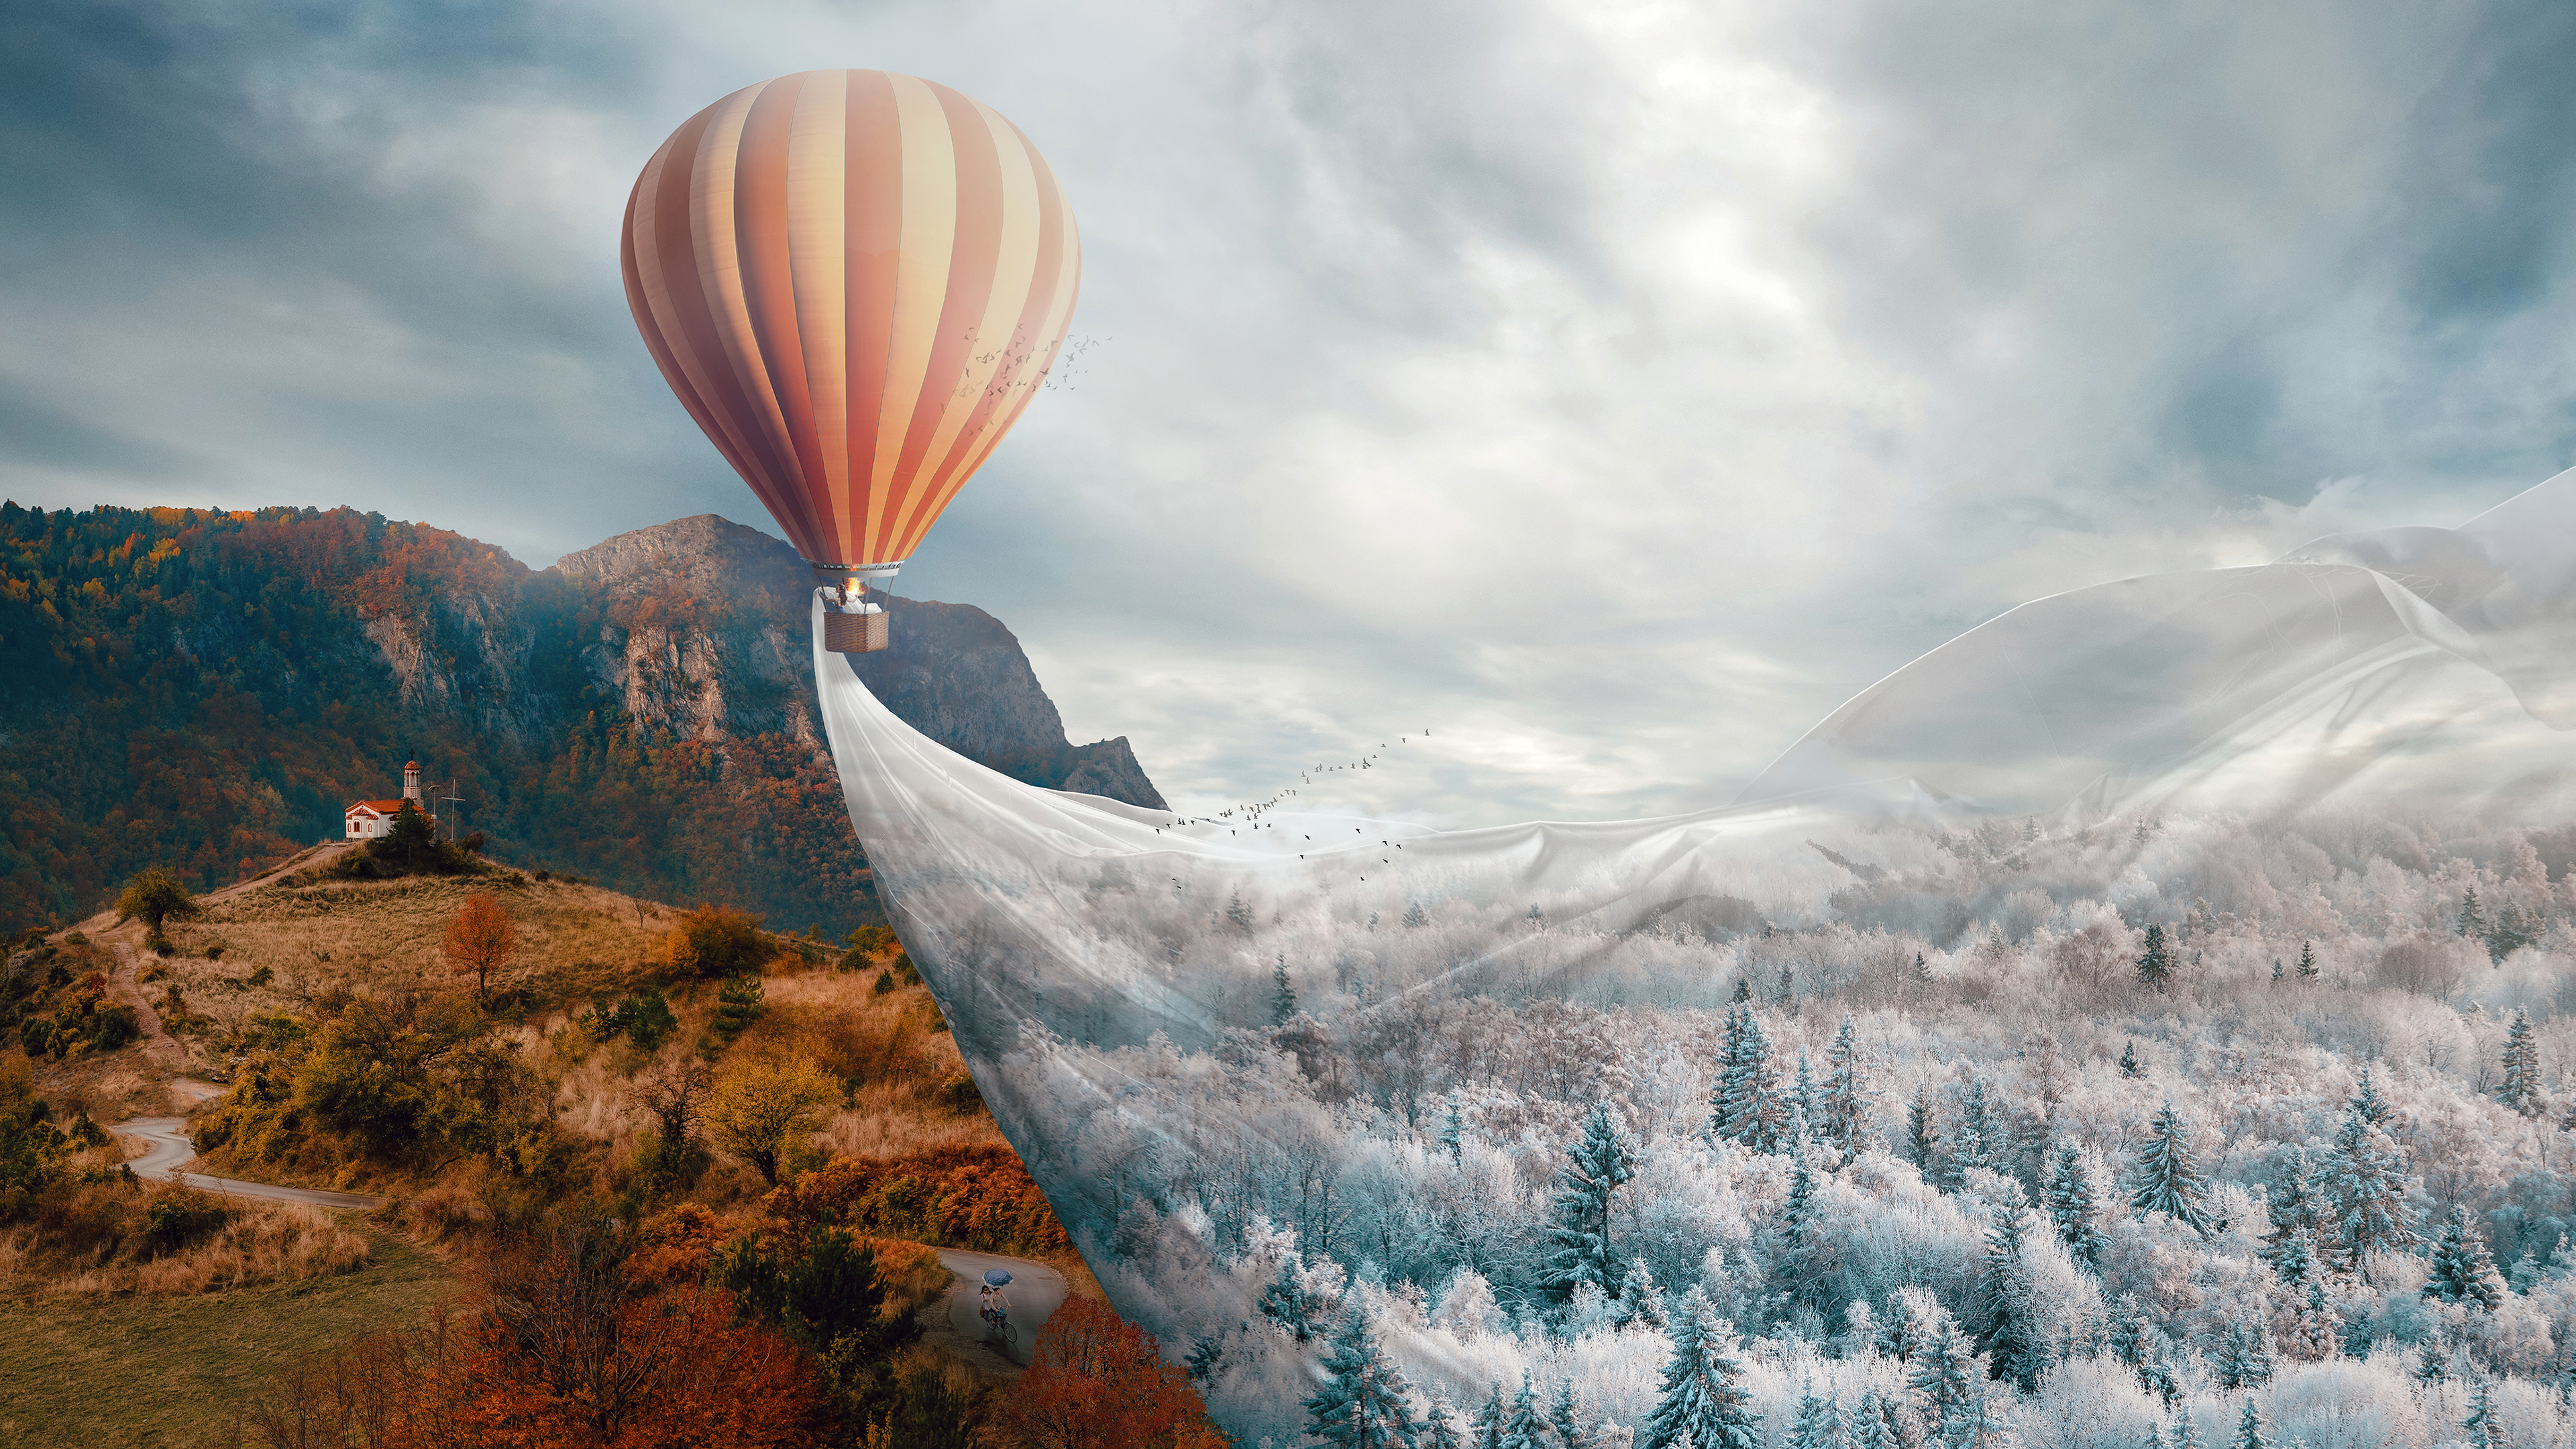 Hot Air Balloon Fantasy 4k Wallpapers Wallpapers Hd